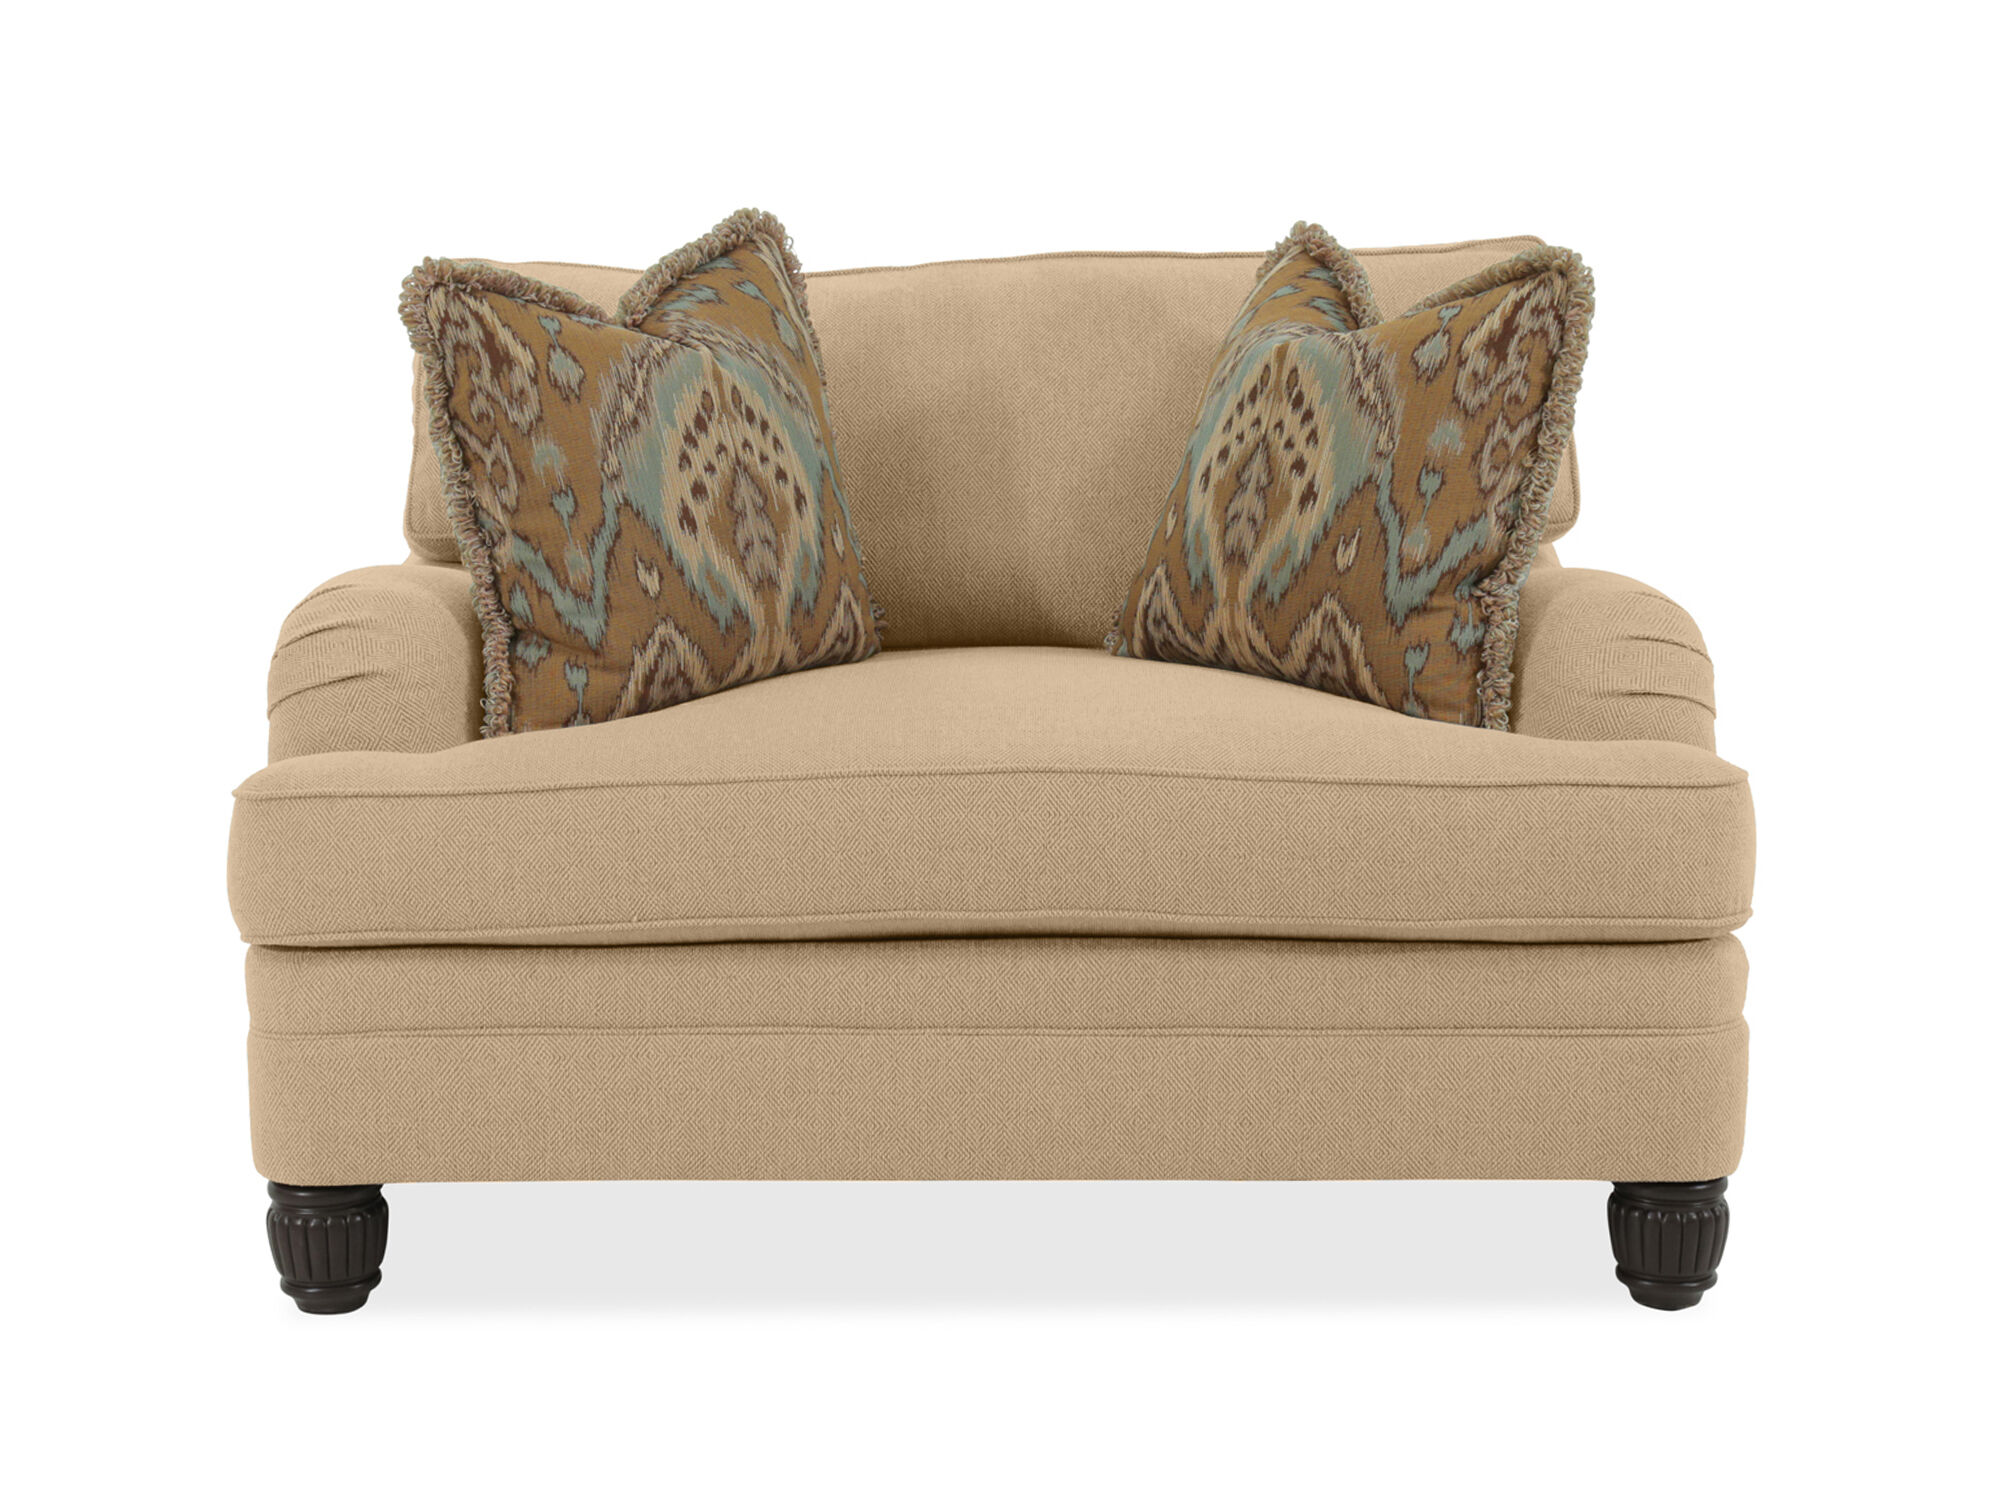 bernhardt walsh sofa 3 seat recliner diamond textured casual 54 5 quot chair and a half in beige